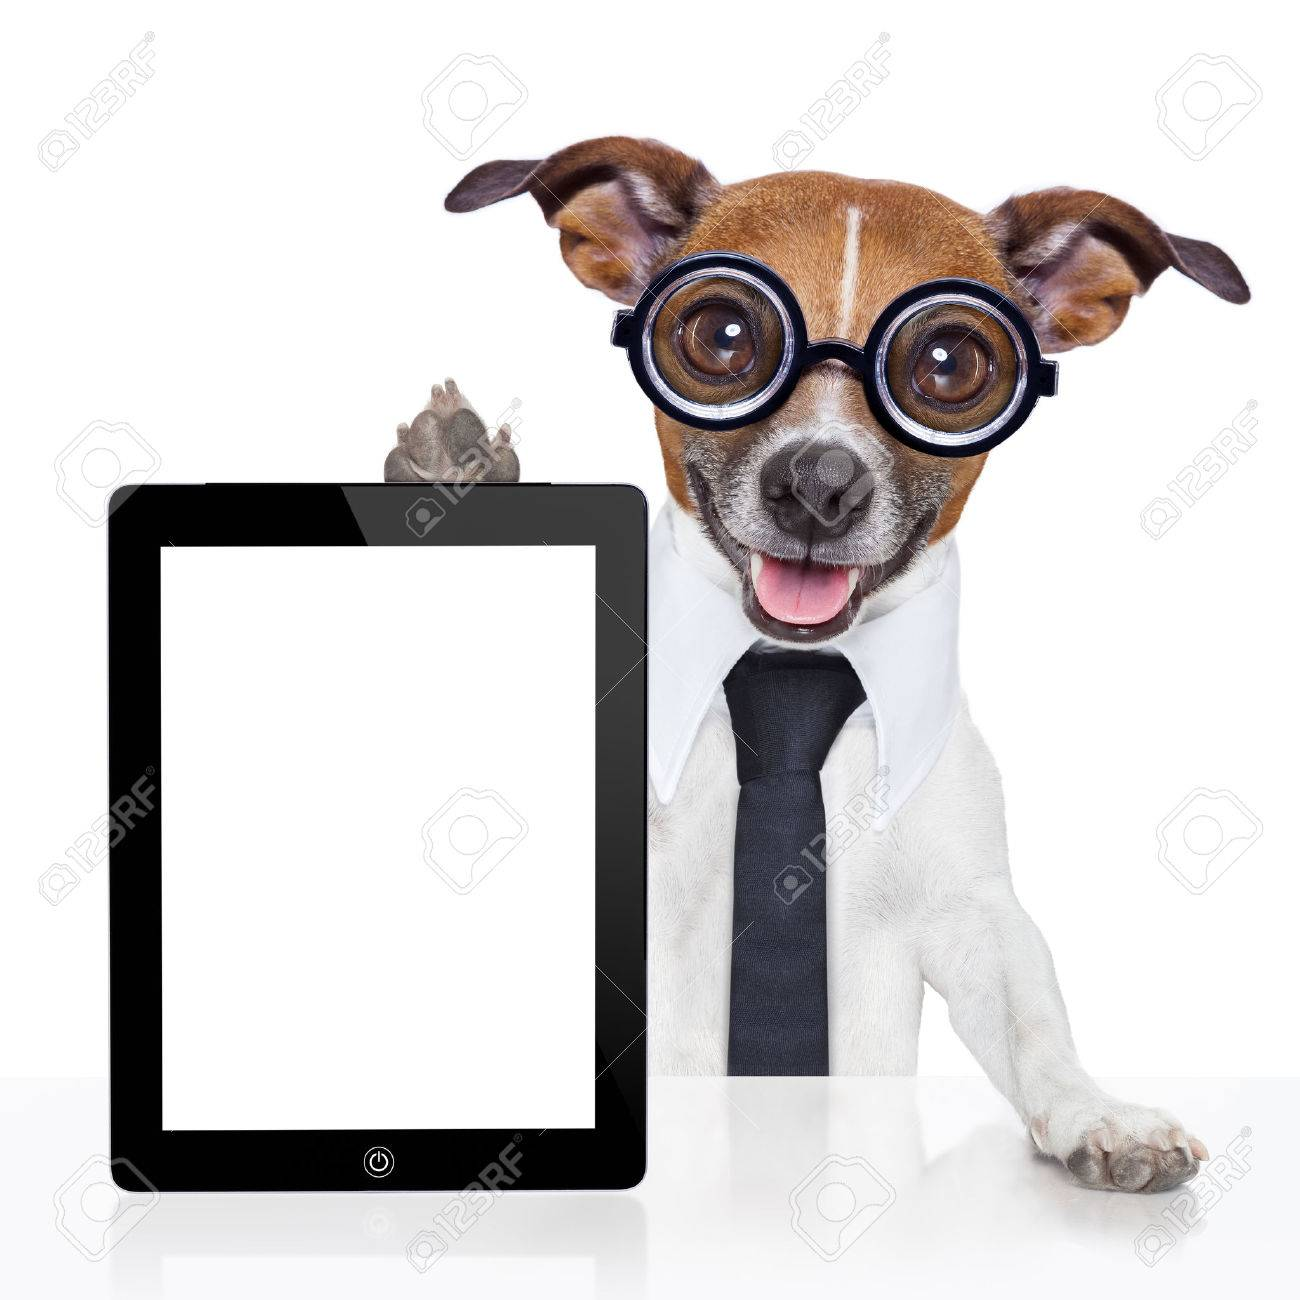 crazy business dog with a tie  and glasses Stock Photo - 25963768